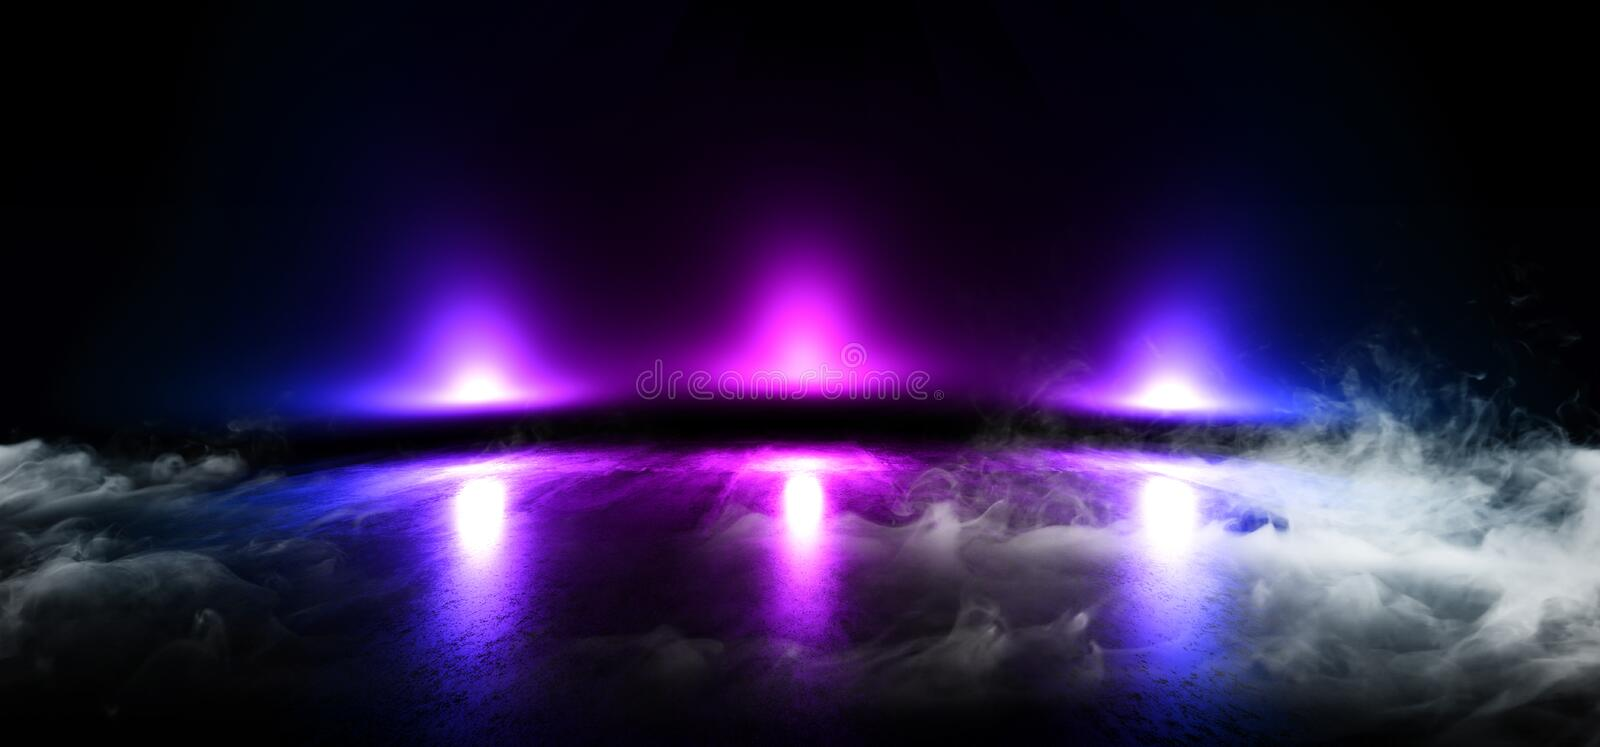 Smoke Stage Futuristic Blue Purple Neon Glow Sci Fi  VIbrant Dark Showcase Podium Virtual Reality Empty Reflection Grunge Concrete. Laser 3D Rendering stock illustration